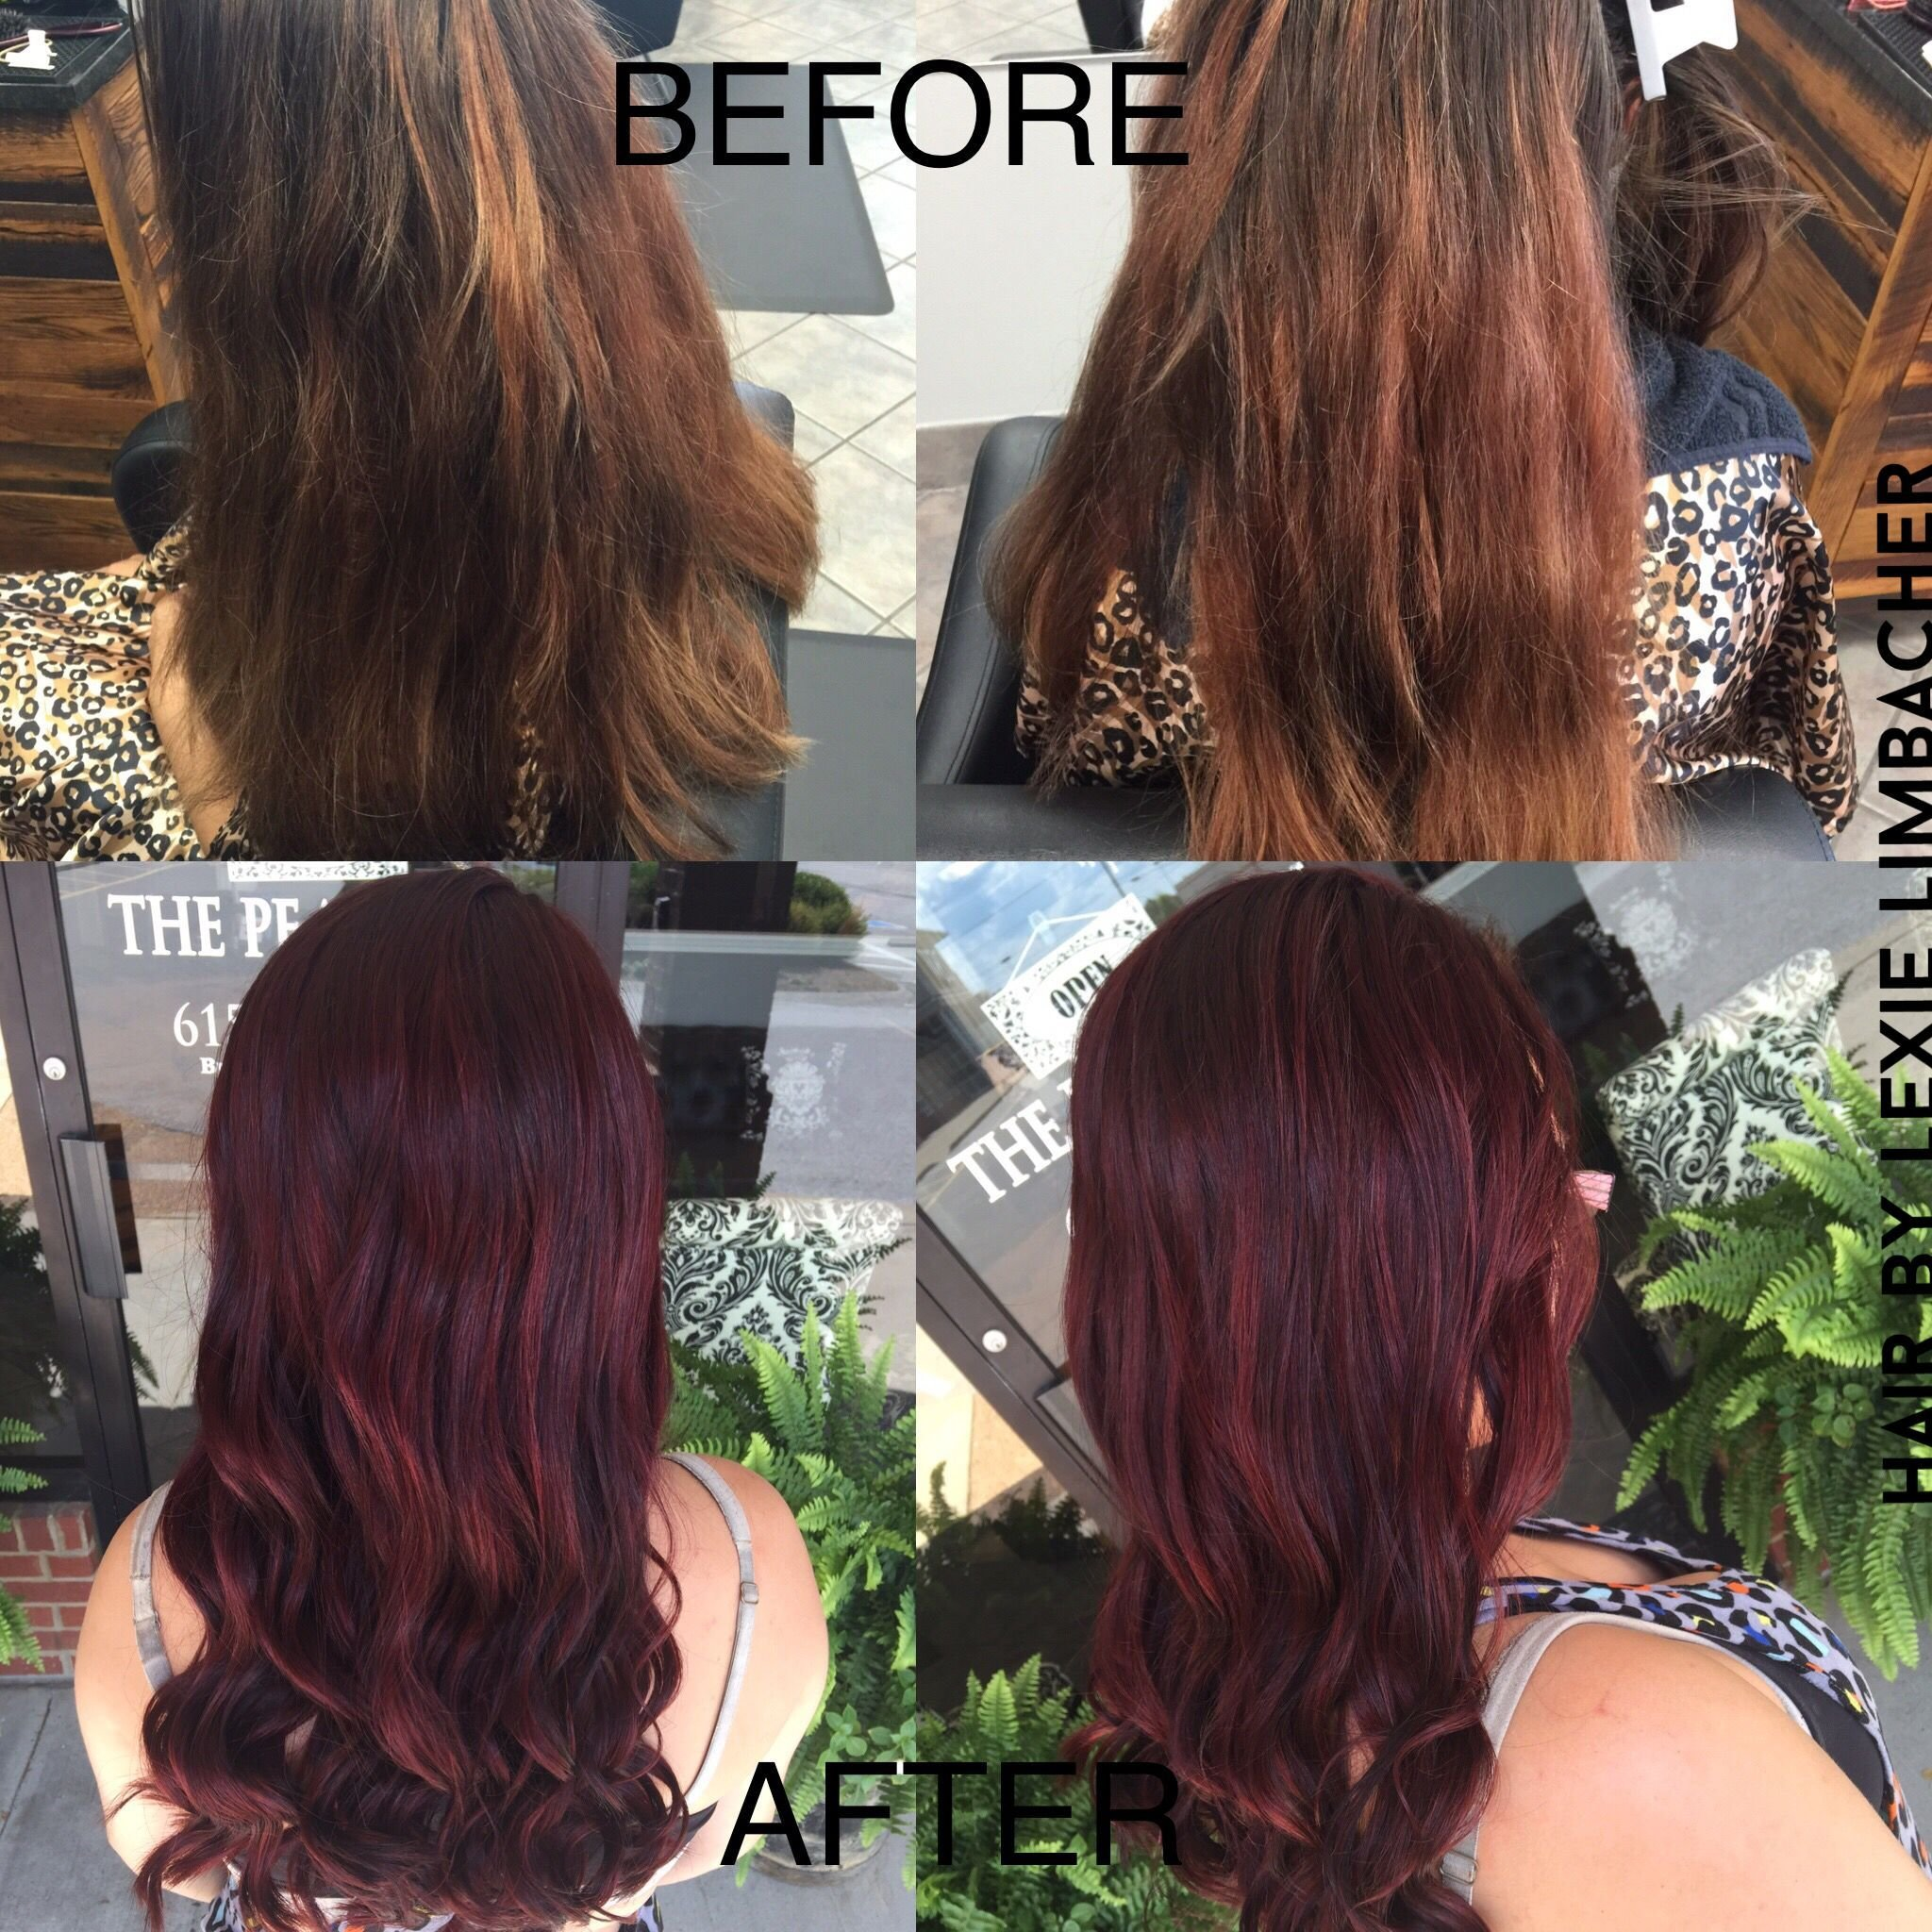 The Best Beautiful Red Violet Color Using Redken 05Rv In Shades Eq Pictures